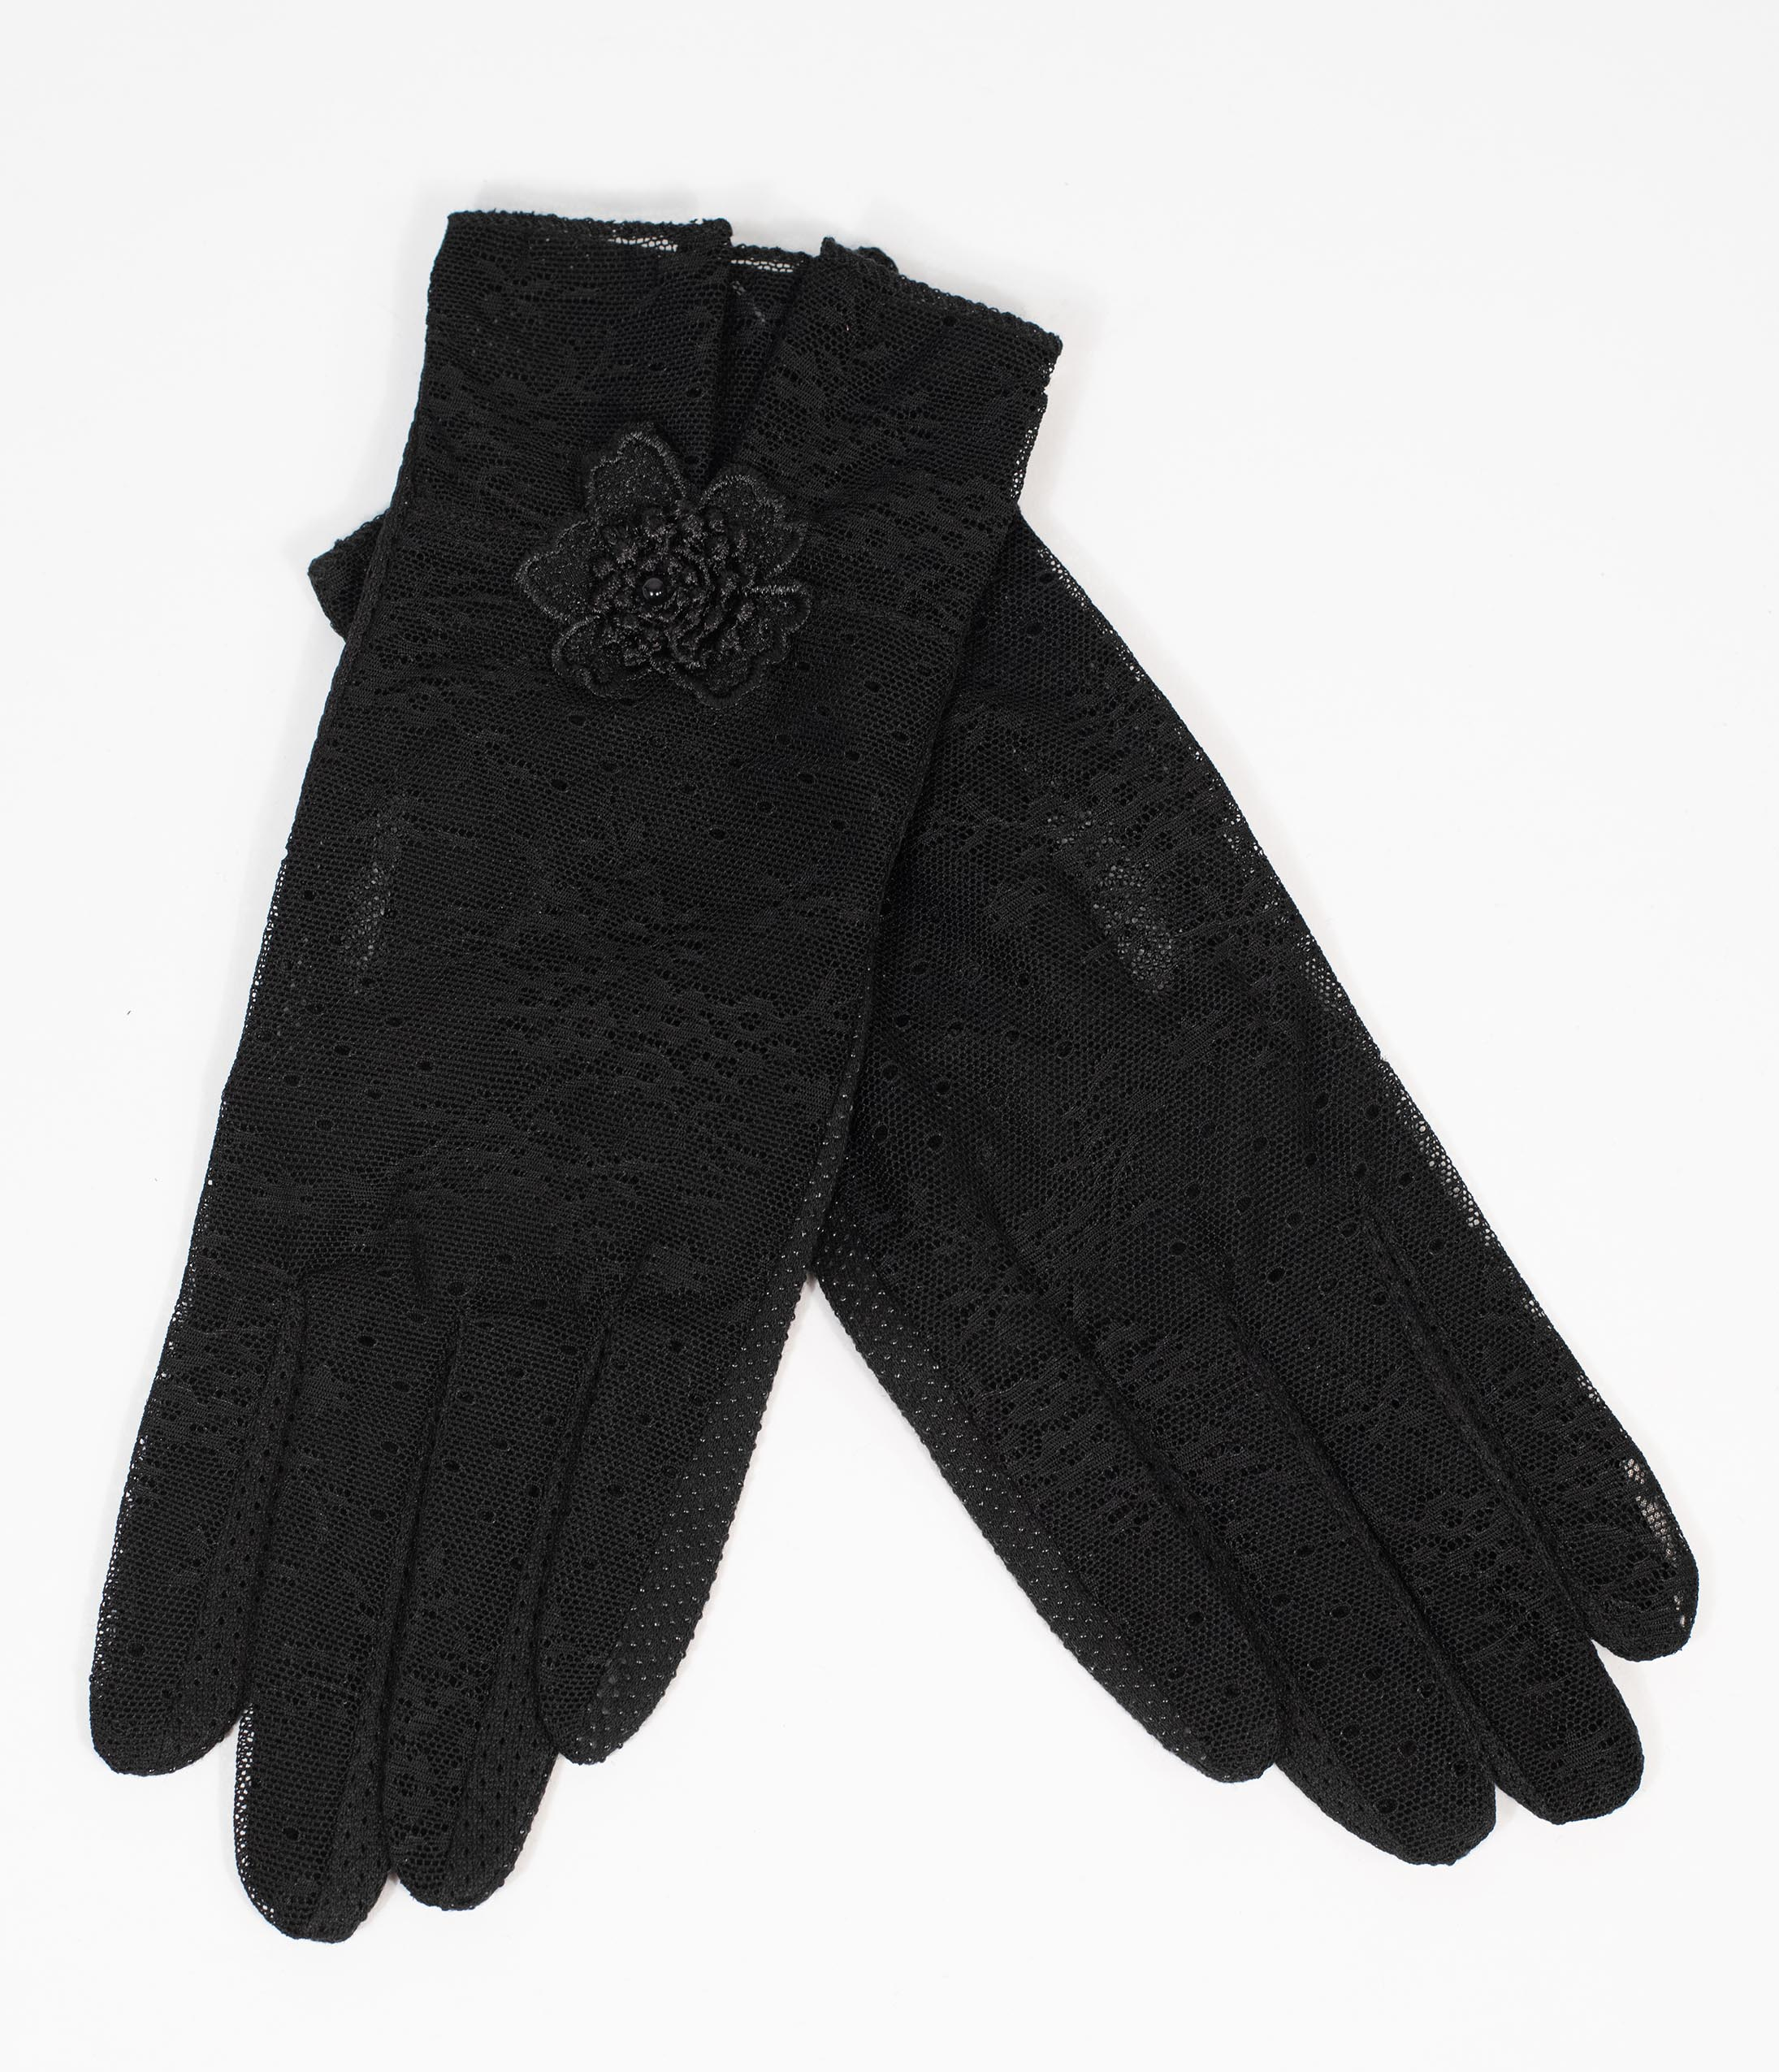 Vintage Style Gloves- Long, Wrist, Evening, Day, Leather, Lace Black Lace  Floral Accent Gloves $22.00 AT vintagedancer.com